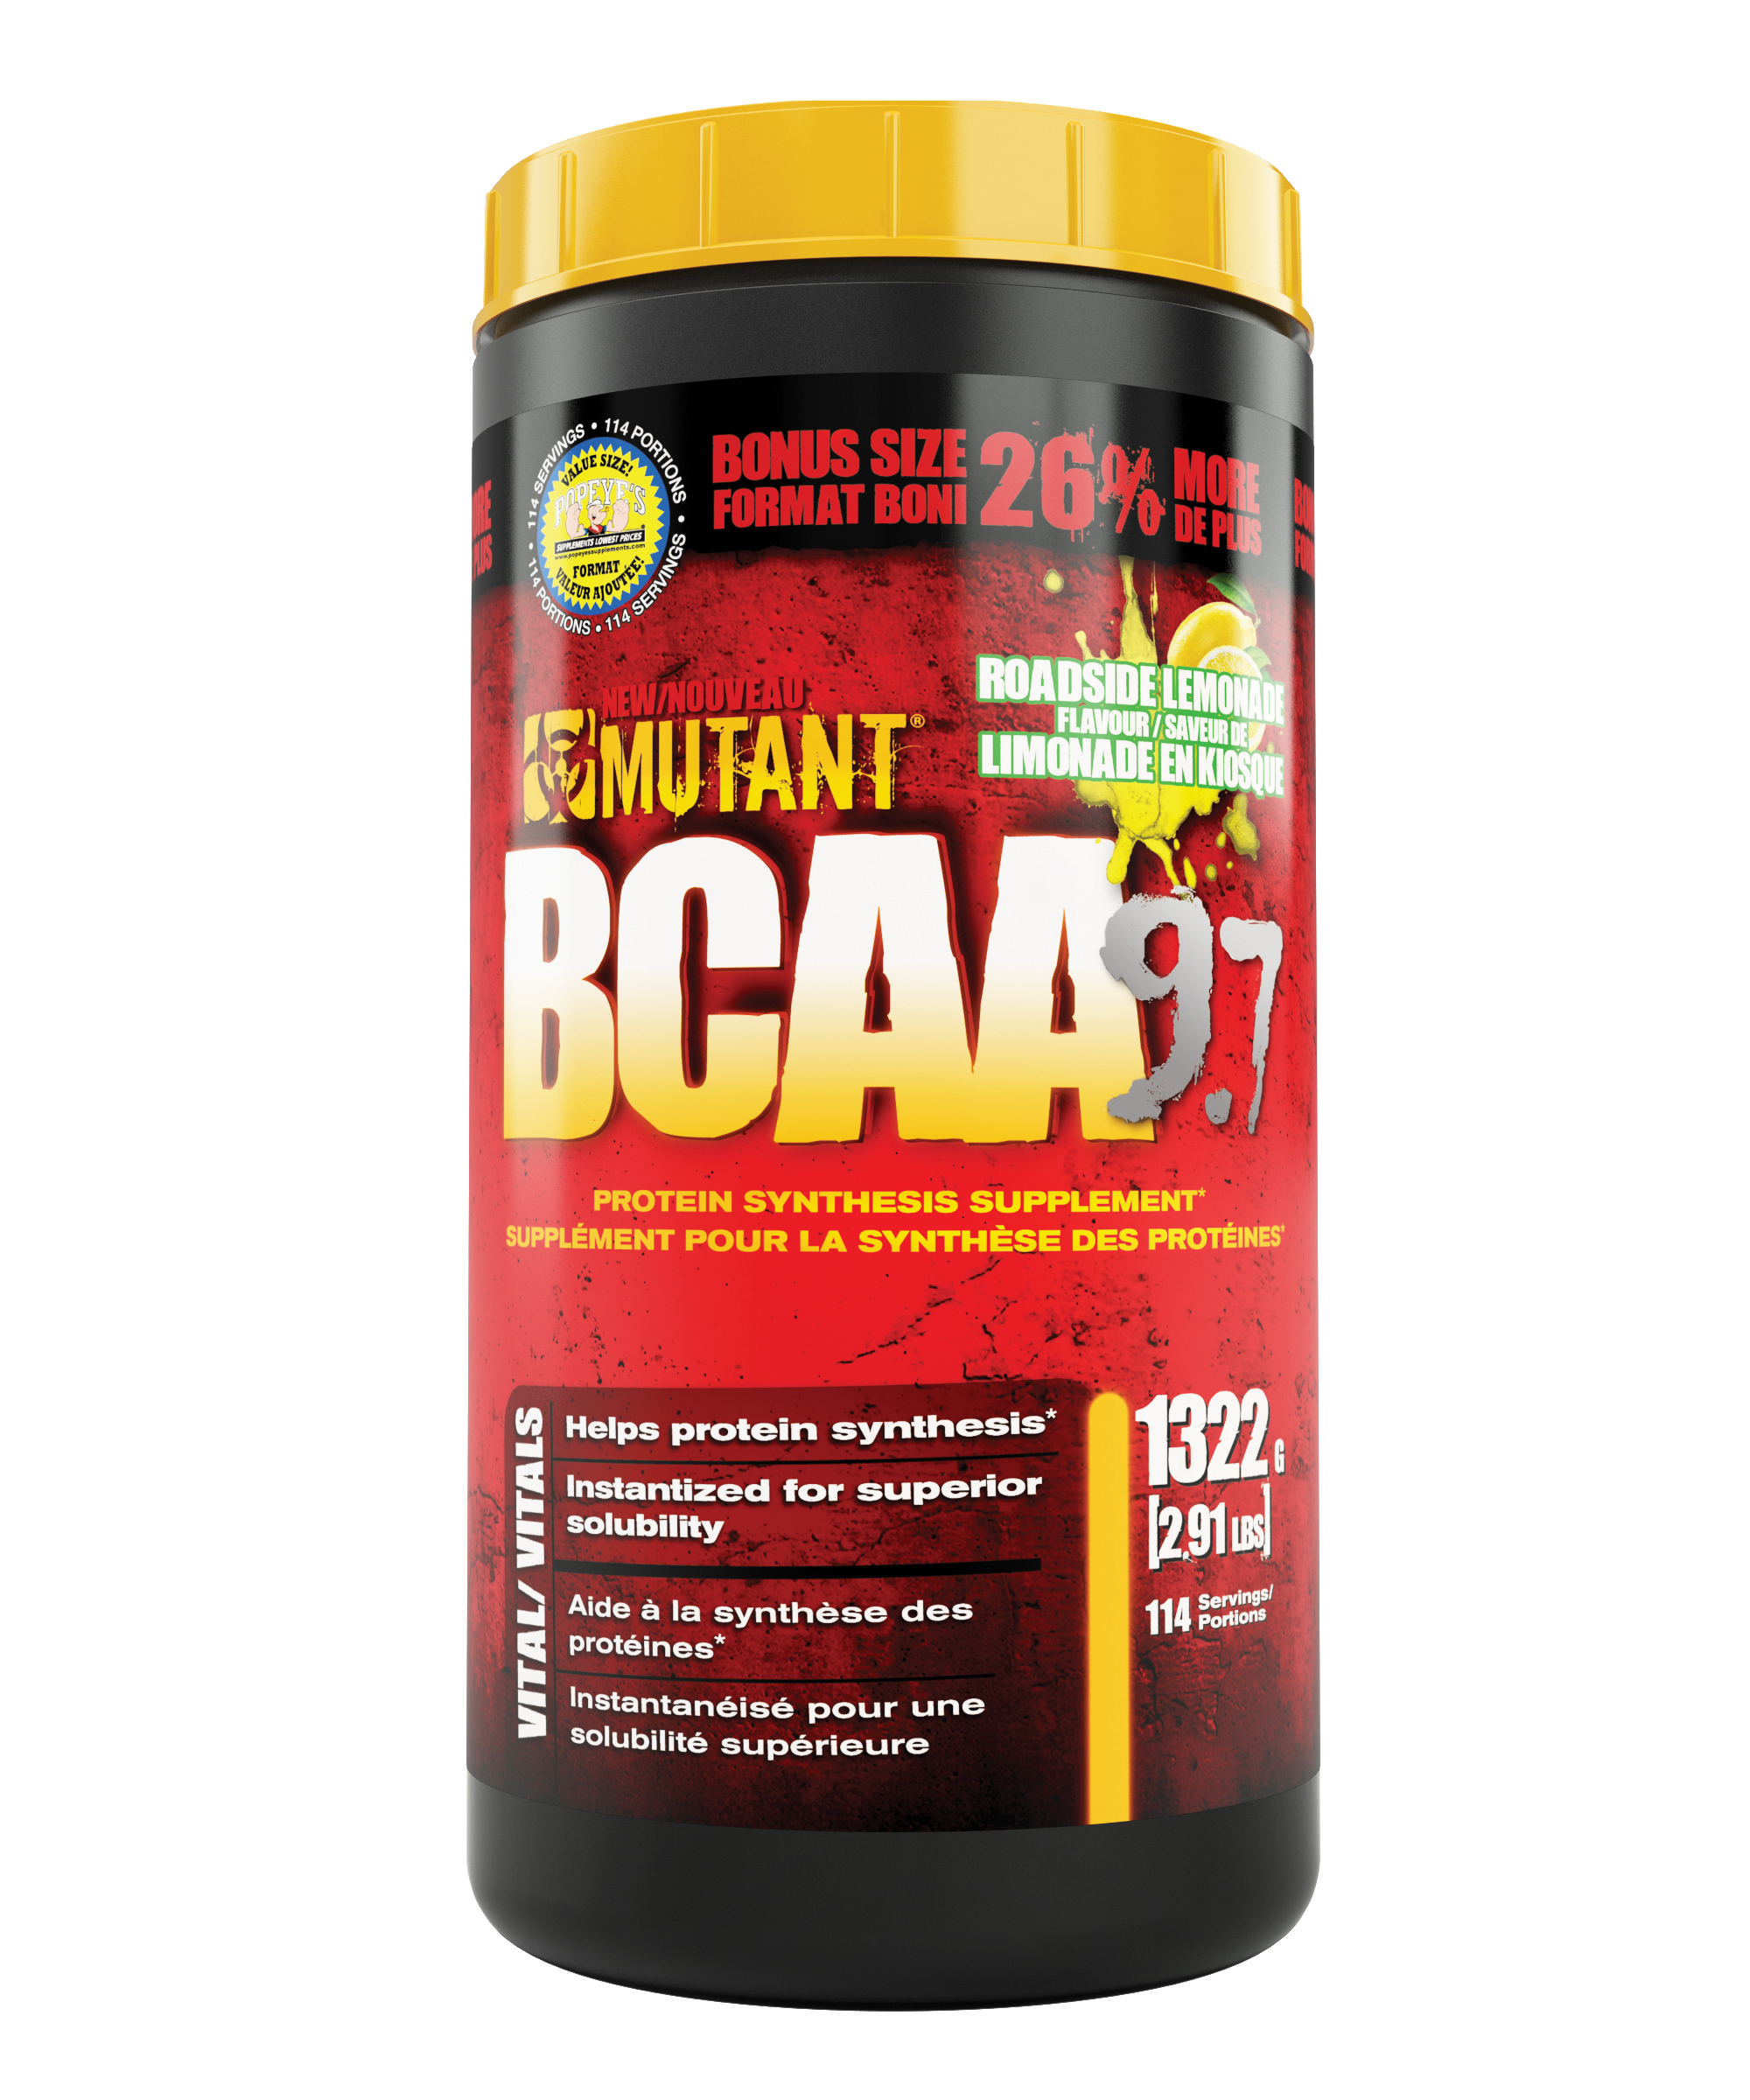 mutant-bcaa-97-roadside-lemonade